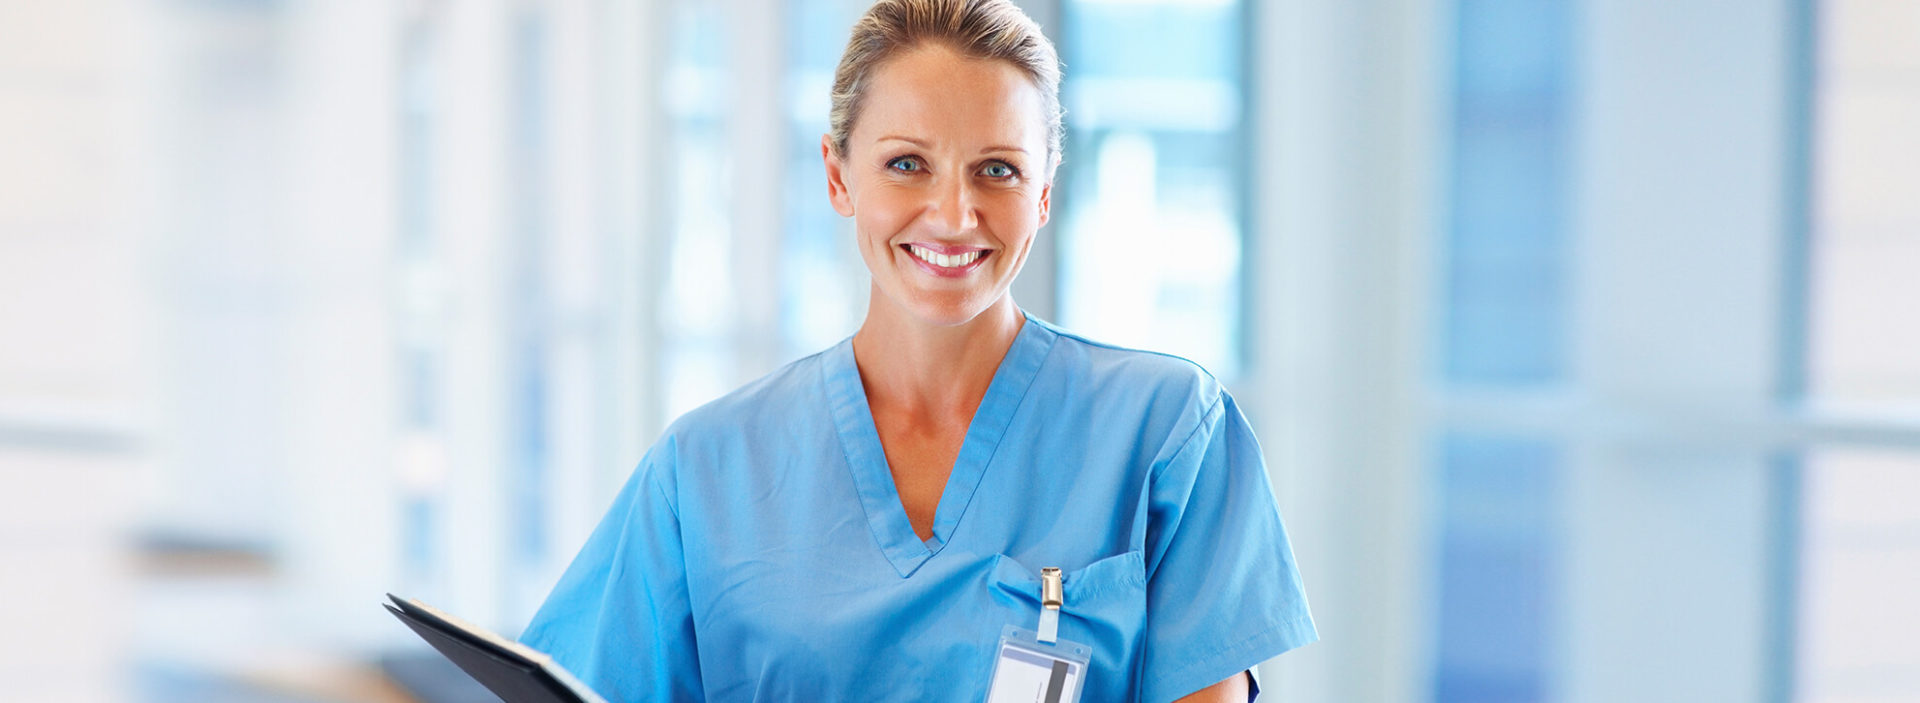 Nurse in scrubs smiles at the camera.